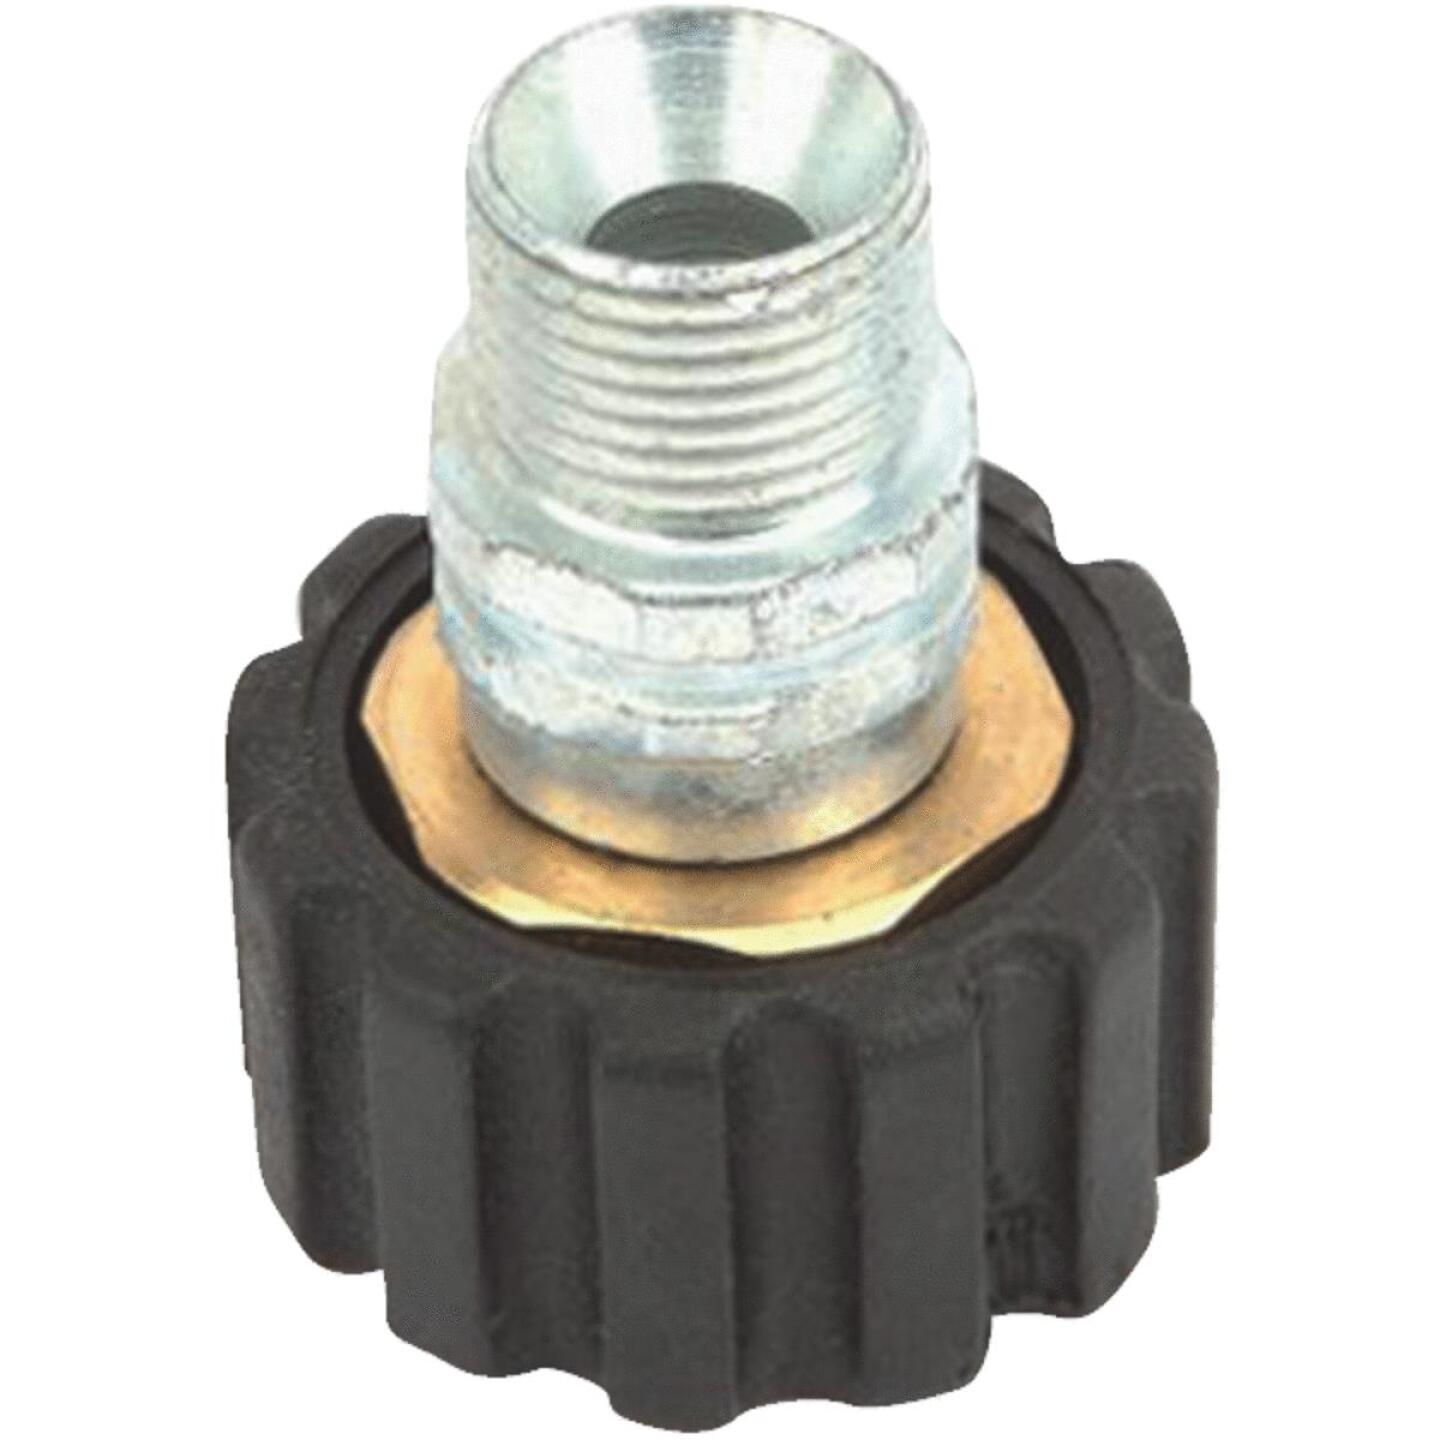 Forney M22F x 3/8 In. Male Screw Pressure Washer Coupling Image 3